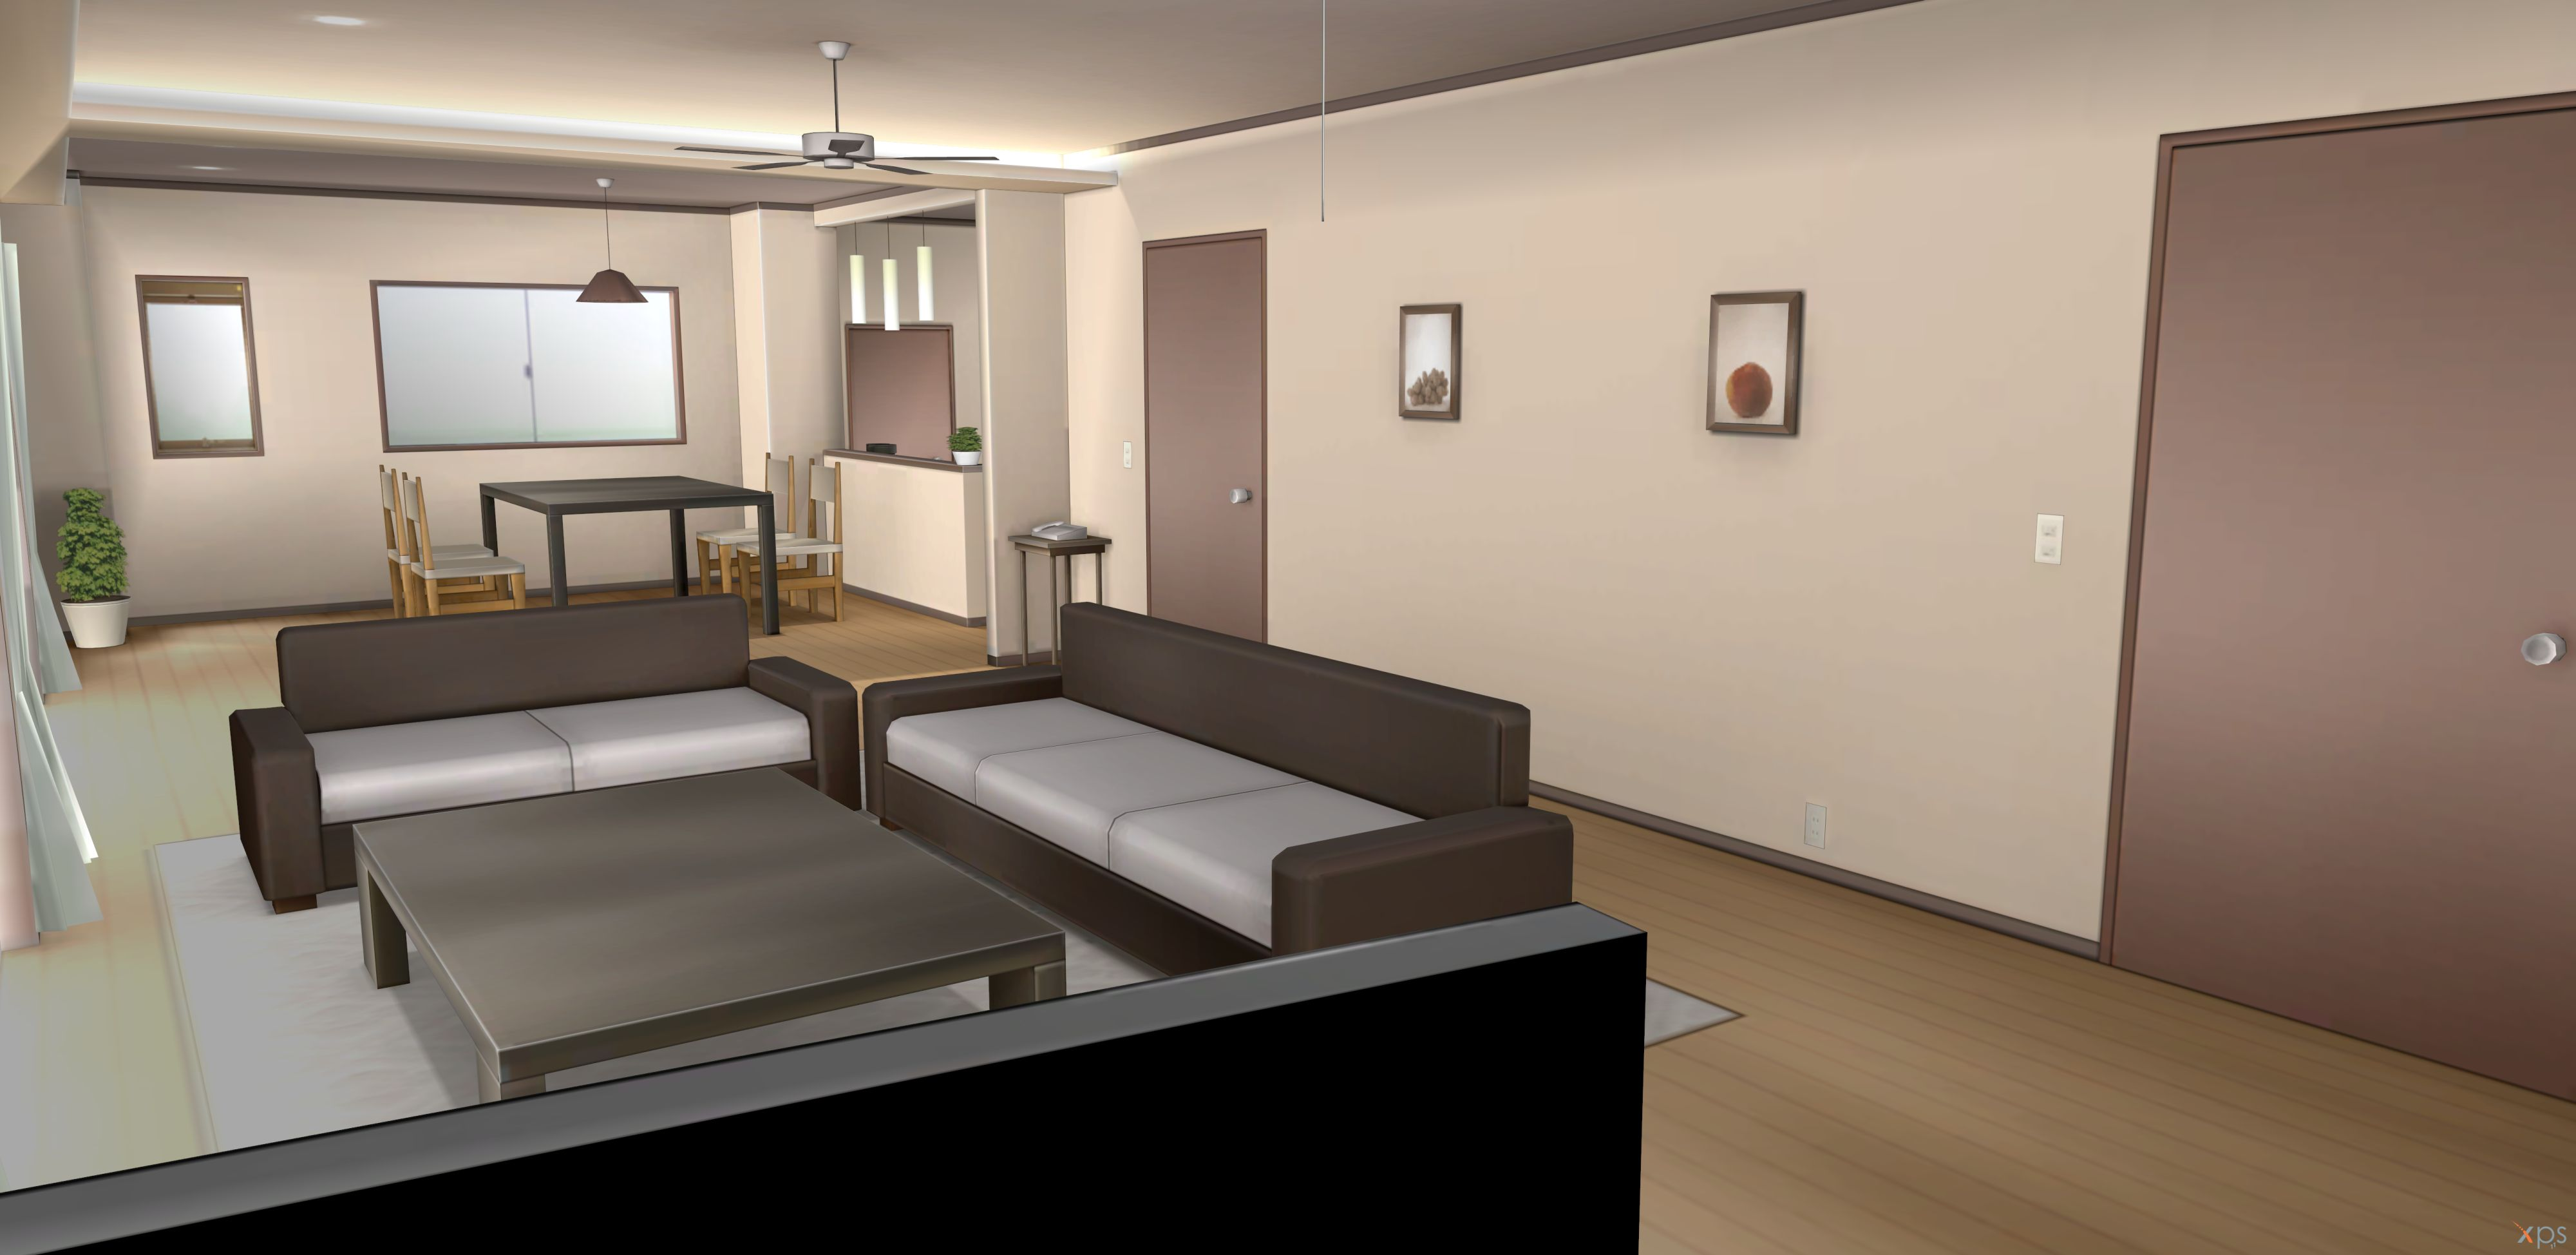 Room Design Simulator Inspirational Room Design Simulator